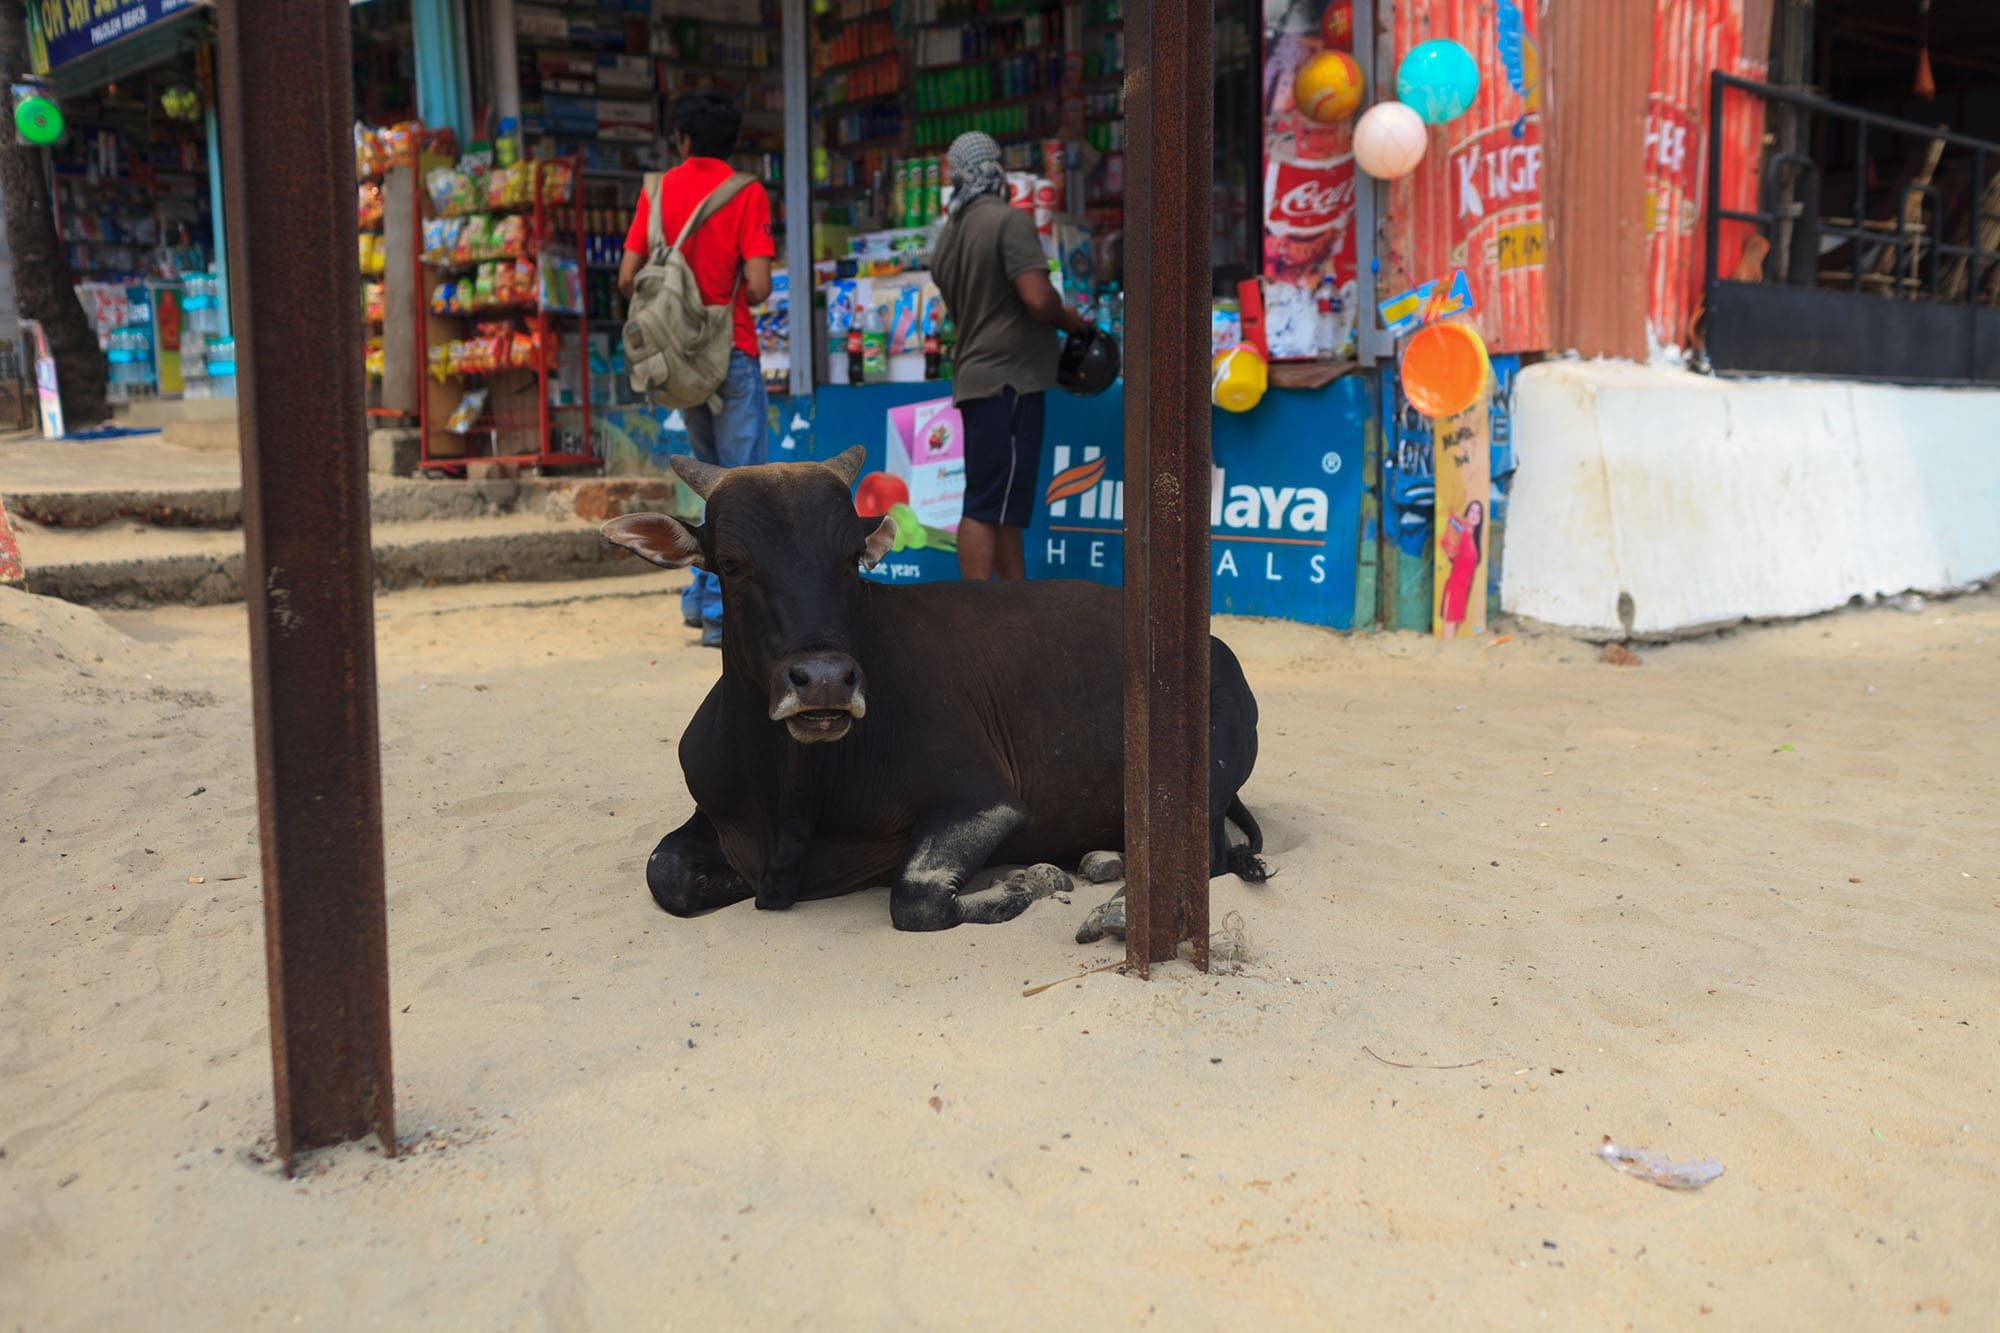 A cow on the beach in Palolem, Goa, India.